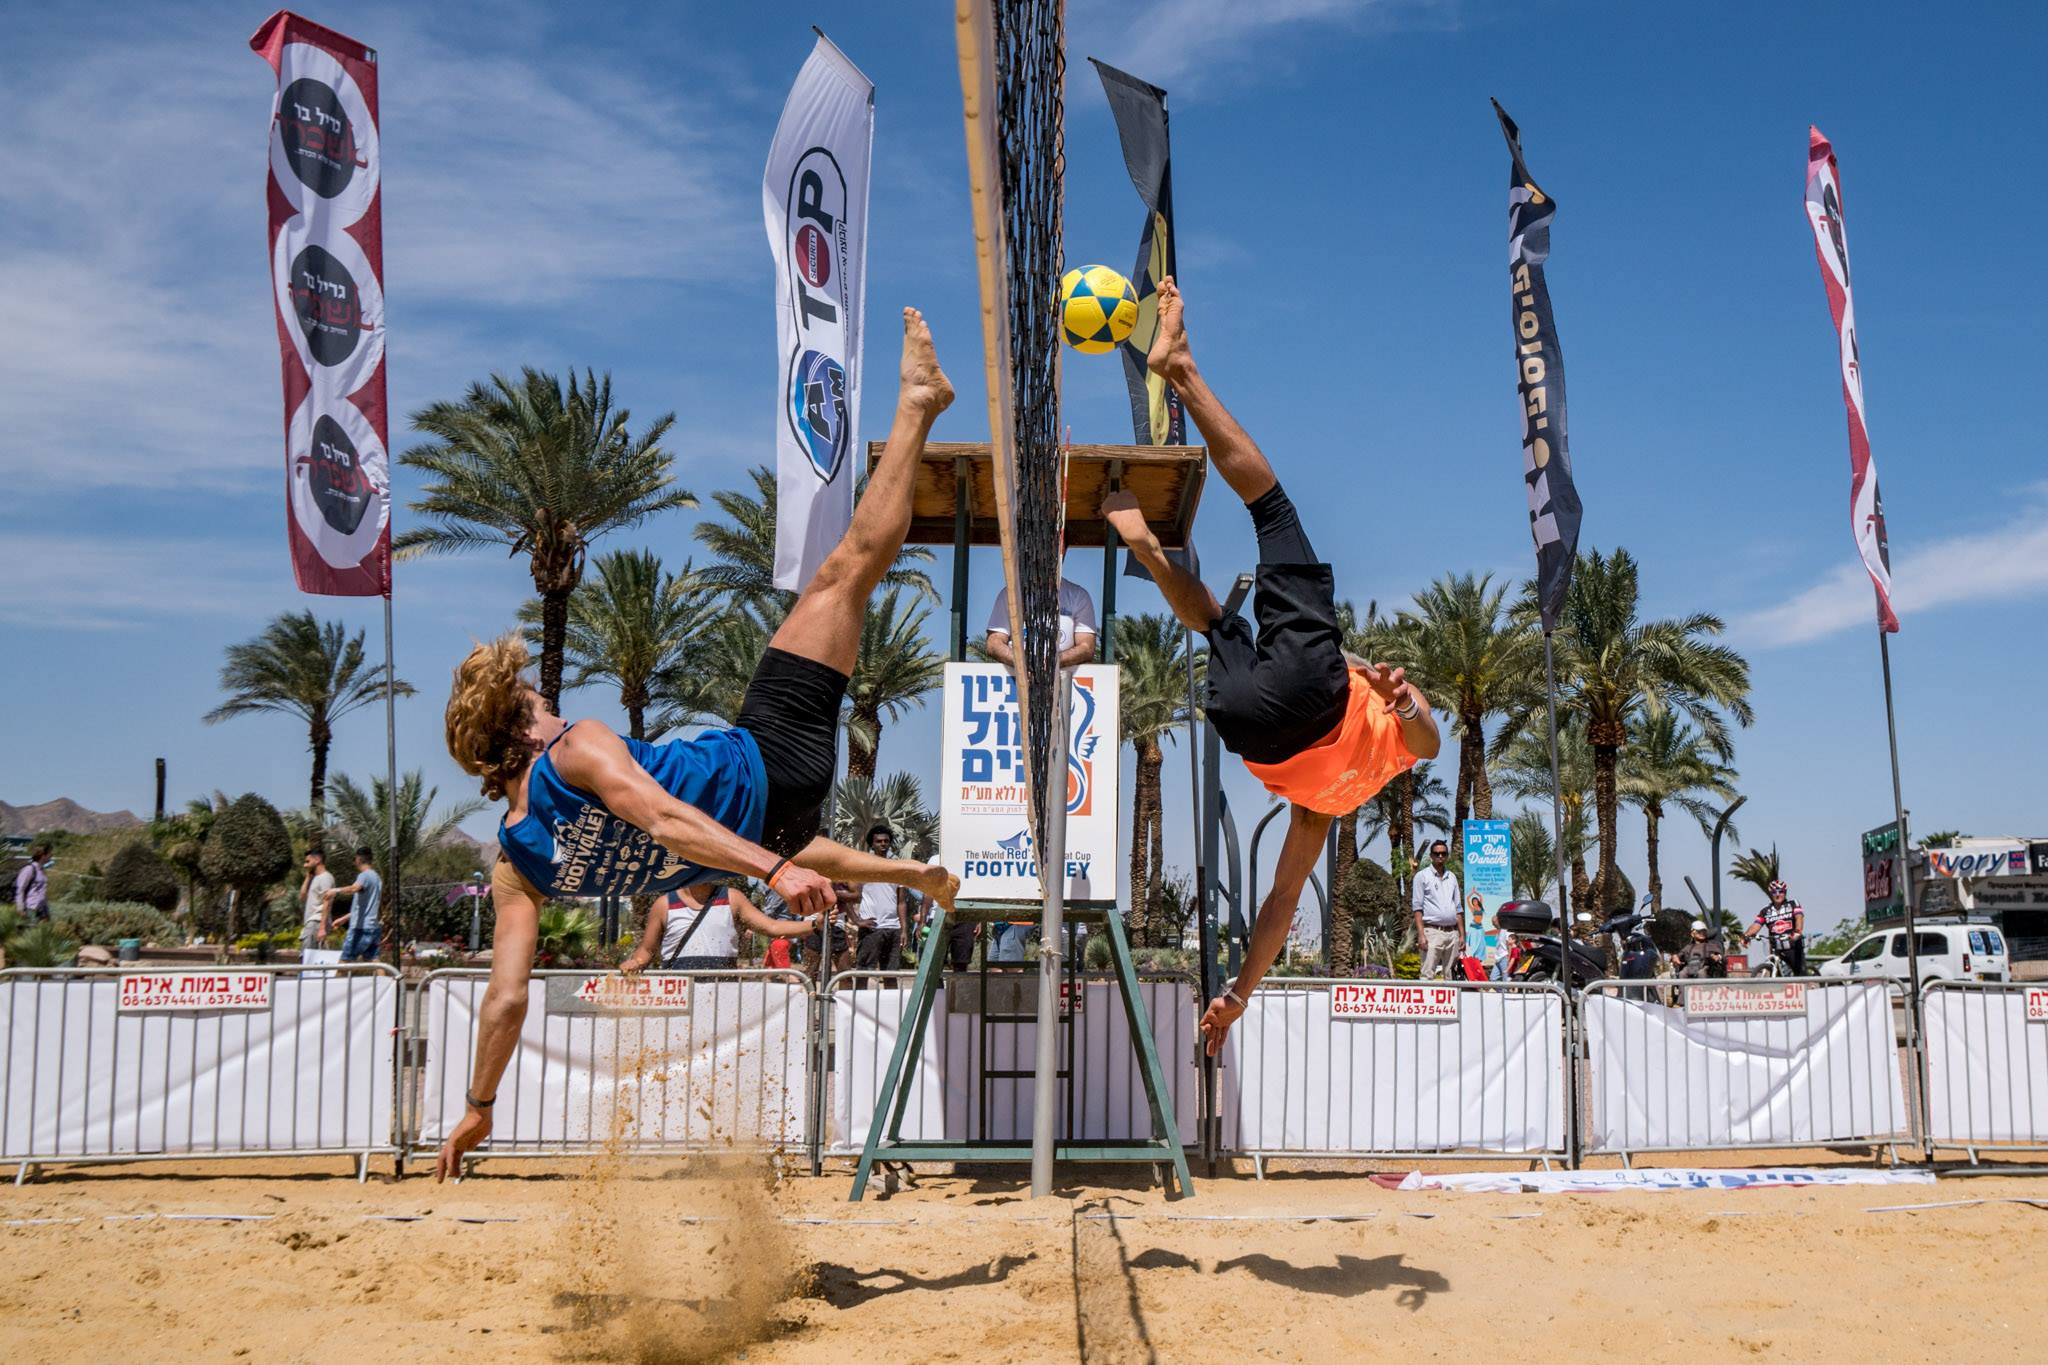 Nelson Pereira / Miguel Pinheiro were at a great level in Israel